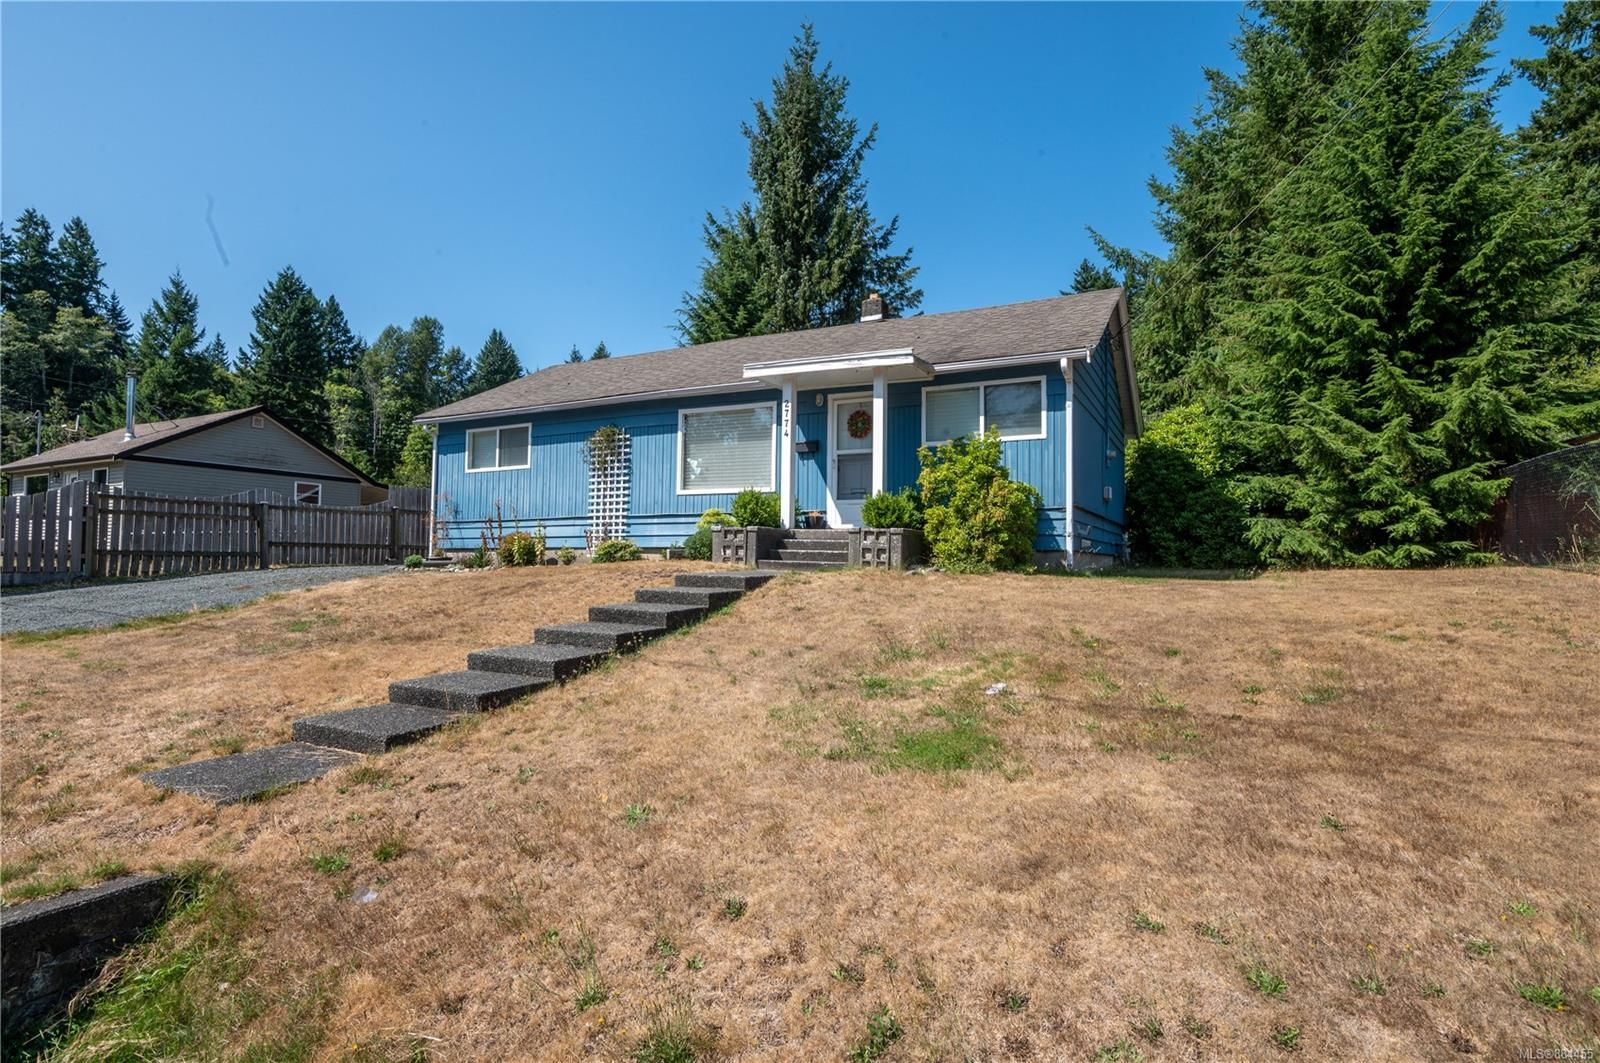 Main Photo: 2774 Vargo Rd in : CR Campbell River North House for sale (Campbell River)  : MLS®# 884455